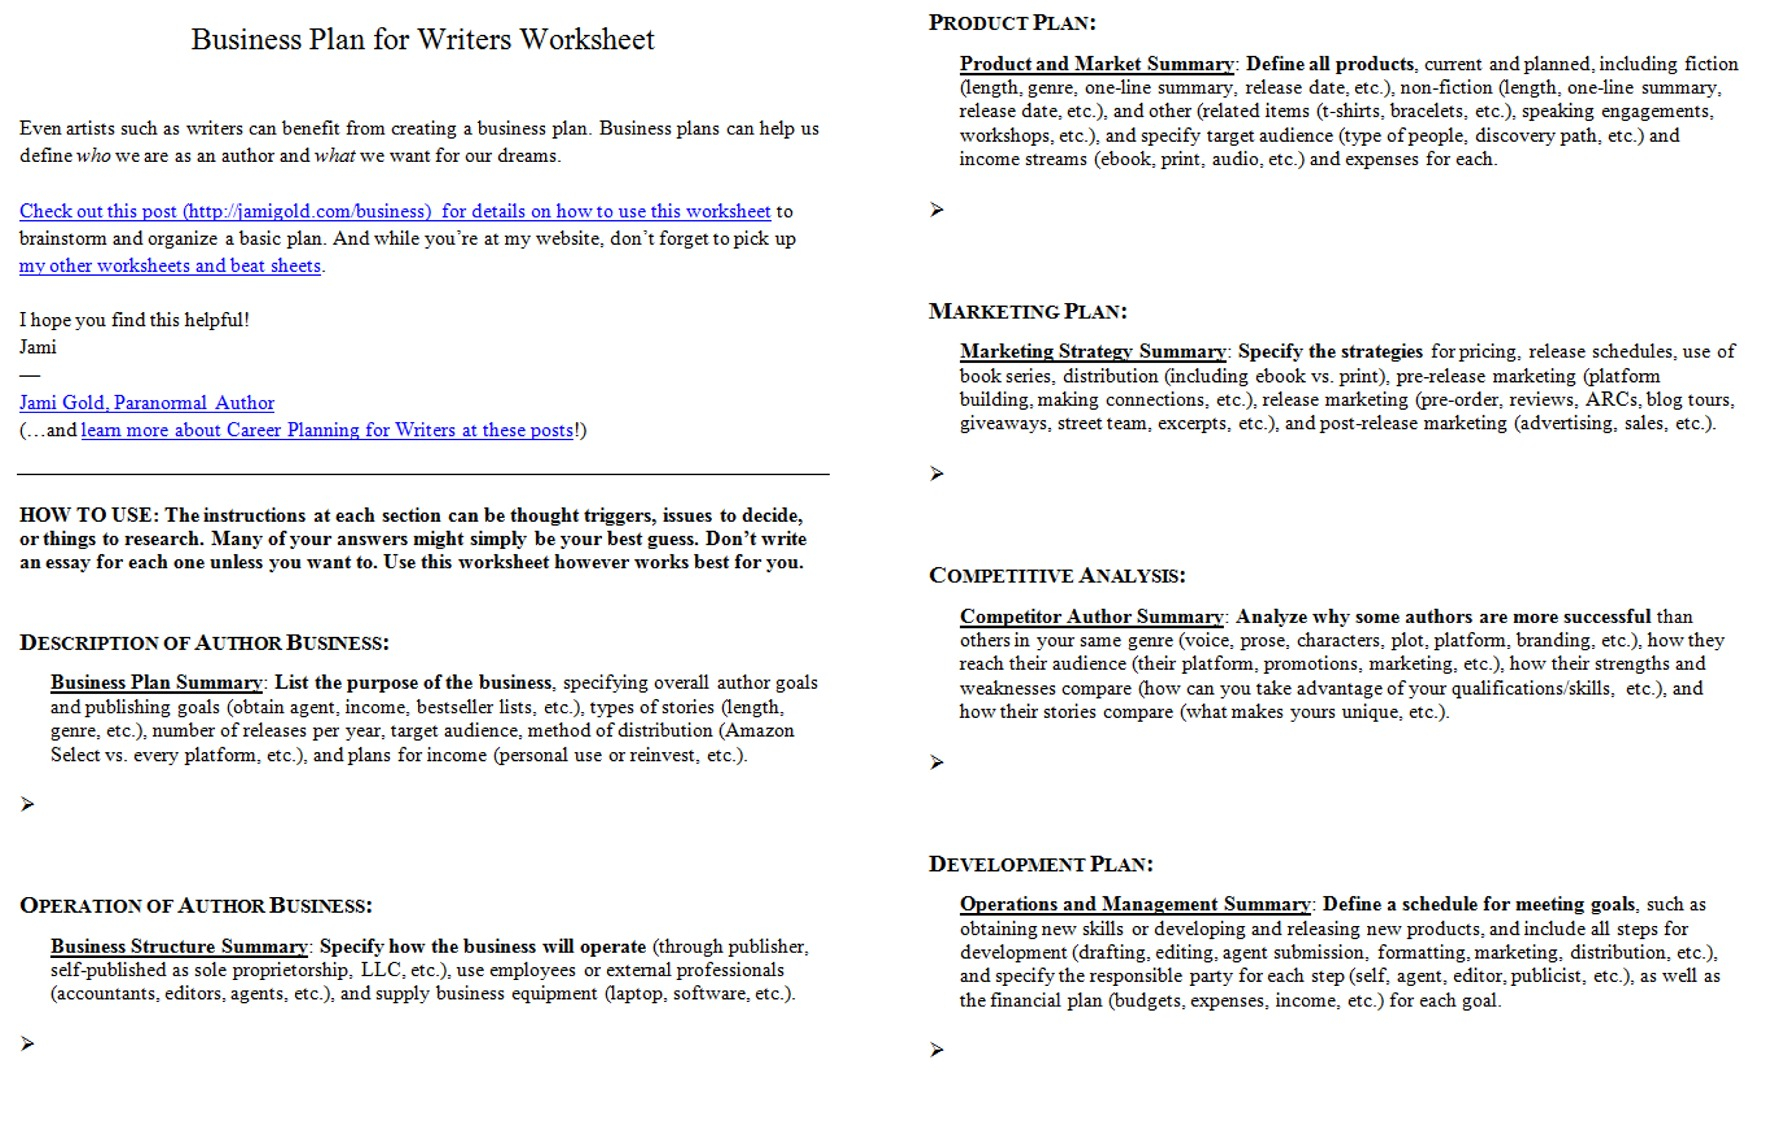 Proatmealus  Stunning Worksheets For Writers  Jami Gold Paranormal Author With Goodlooking Screen Shot Of Both Pages Of The Business Plan For Writers Worksheet With Charming How A Bill Becomes A Law Worksheet Also Worksheet Piecewise Functions In Addition Skills Worksheet And Comma Worksheets As Well As Budget Worksheet Printable Additionally Naming Ionic Compounds Worksheet Answers From Jamigoldcom With Proatmealus  Goodlooking Worksheets For Writers  Jami Gold Paranormal Author With Charming Screen Shot Of Both Pages Of The Business Plan For Writers Worksheet And Stunning How A Bill Becomes A Law Worksheet Also Worksheet Piecewise Functions In Addition Skills Worksheet From Jamigoldcom